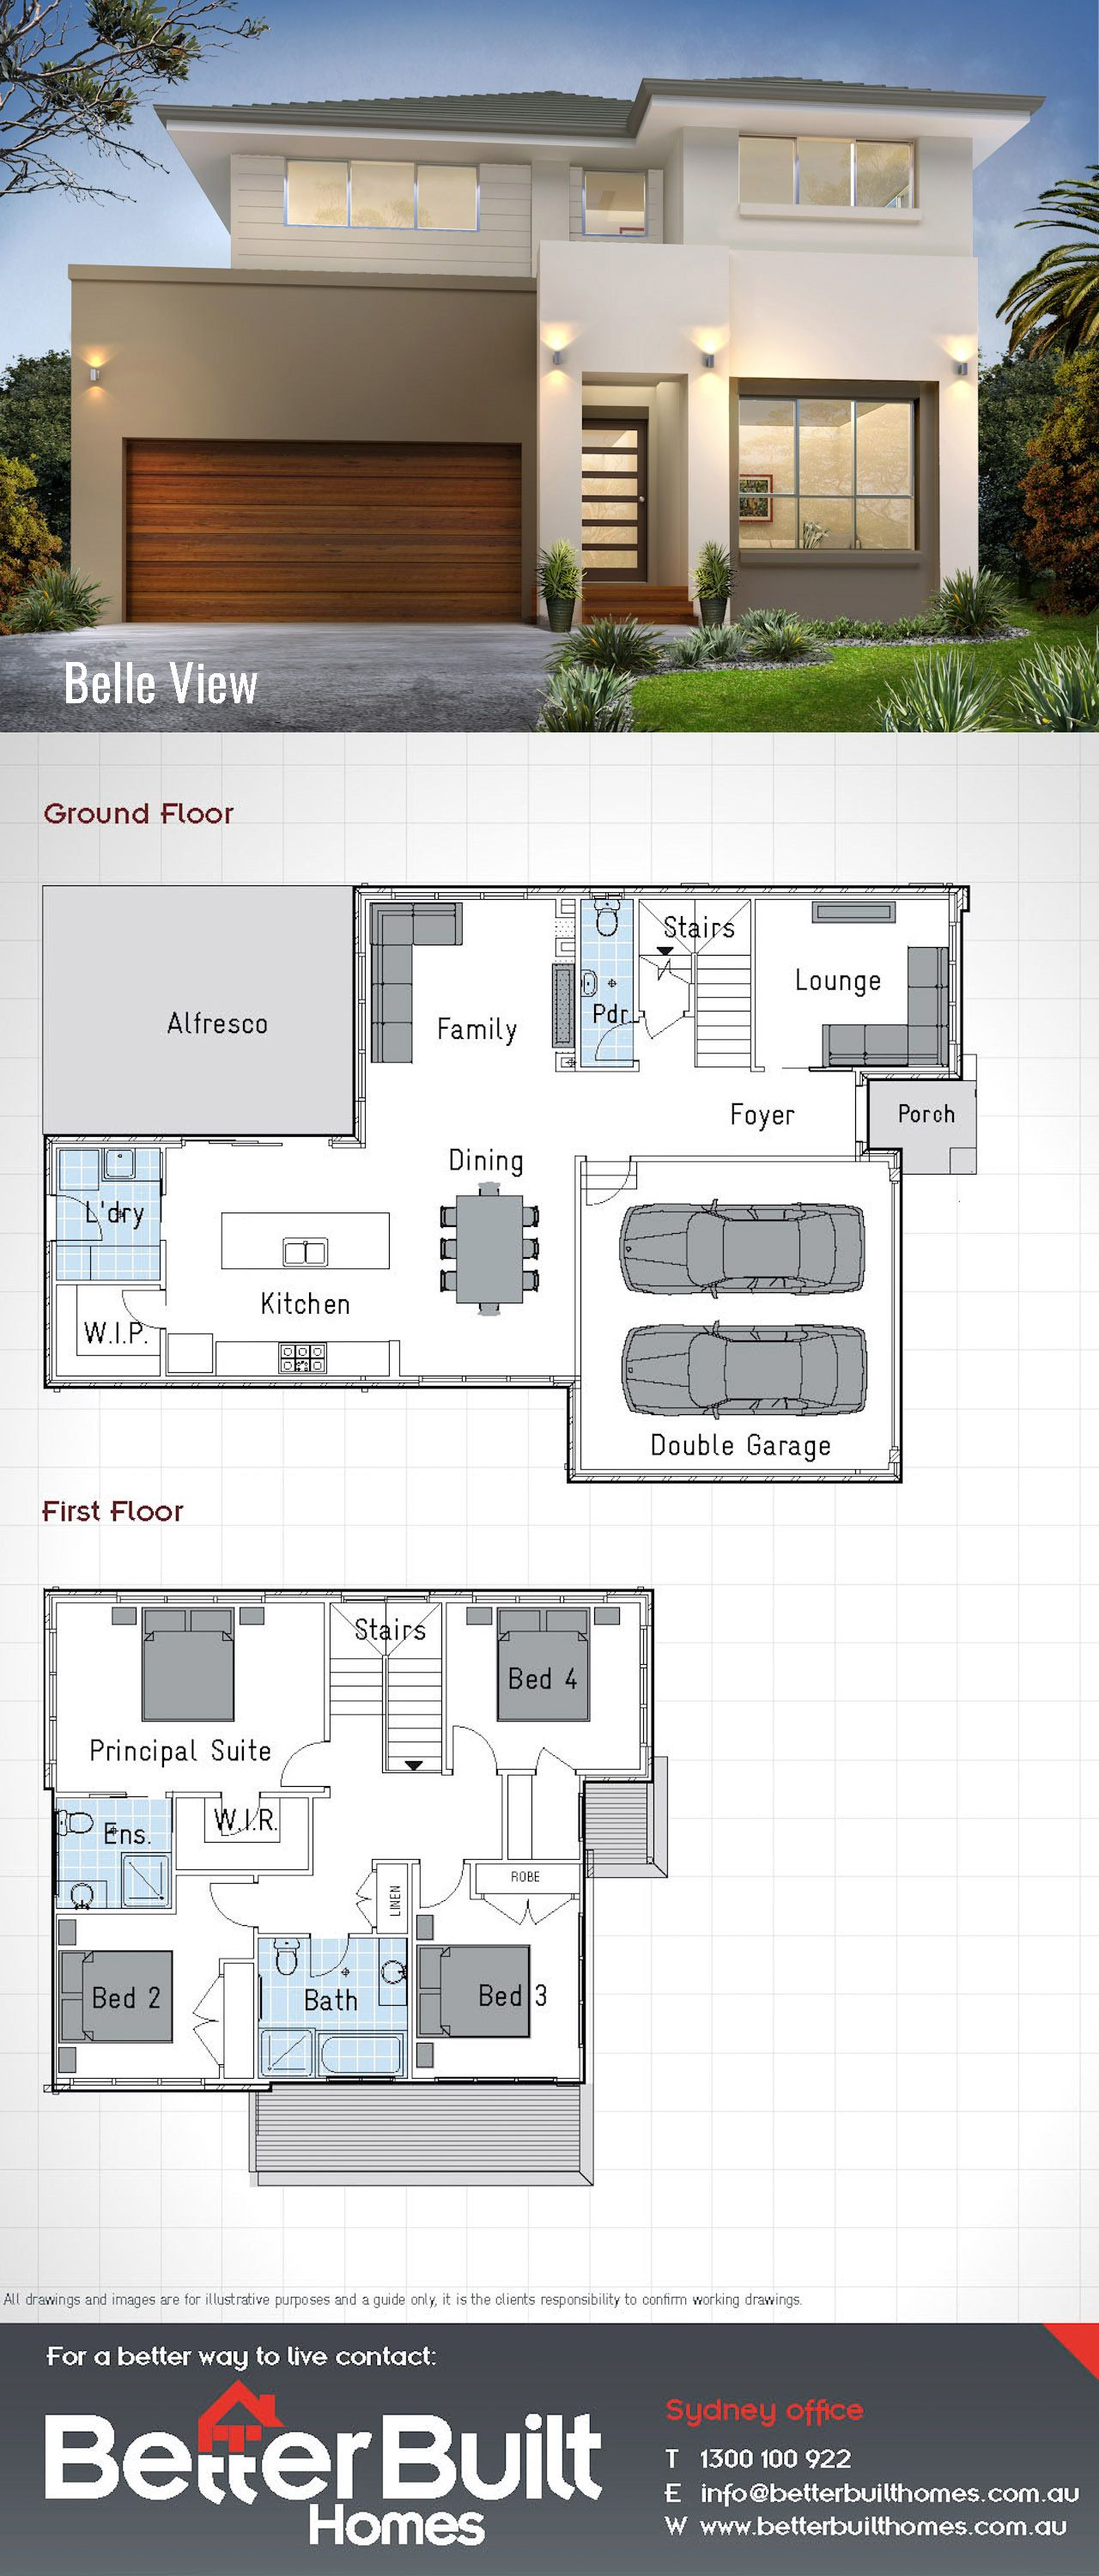 The belle view 26 double storey house design 232 sq m for 10 x 16 living room layout